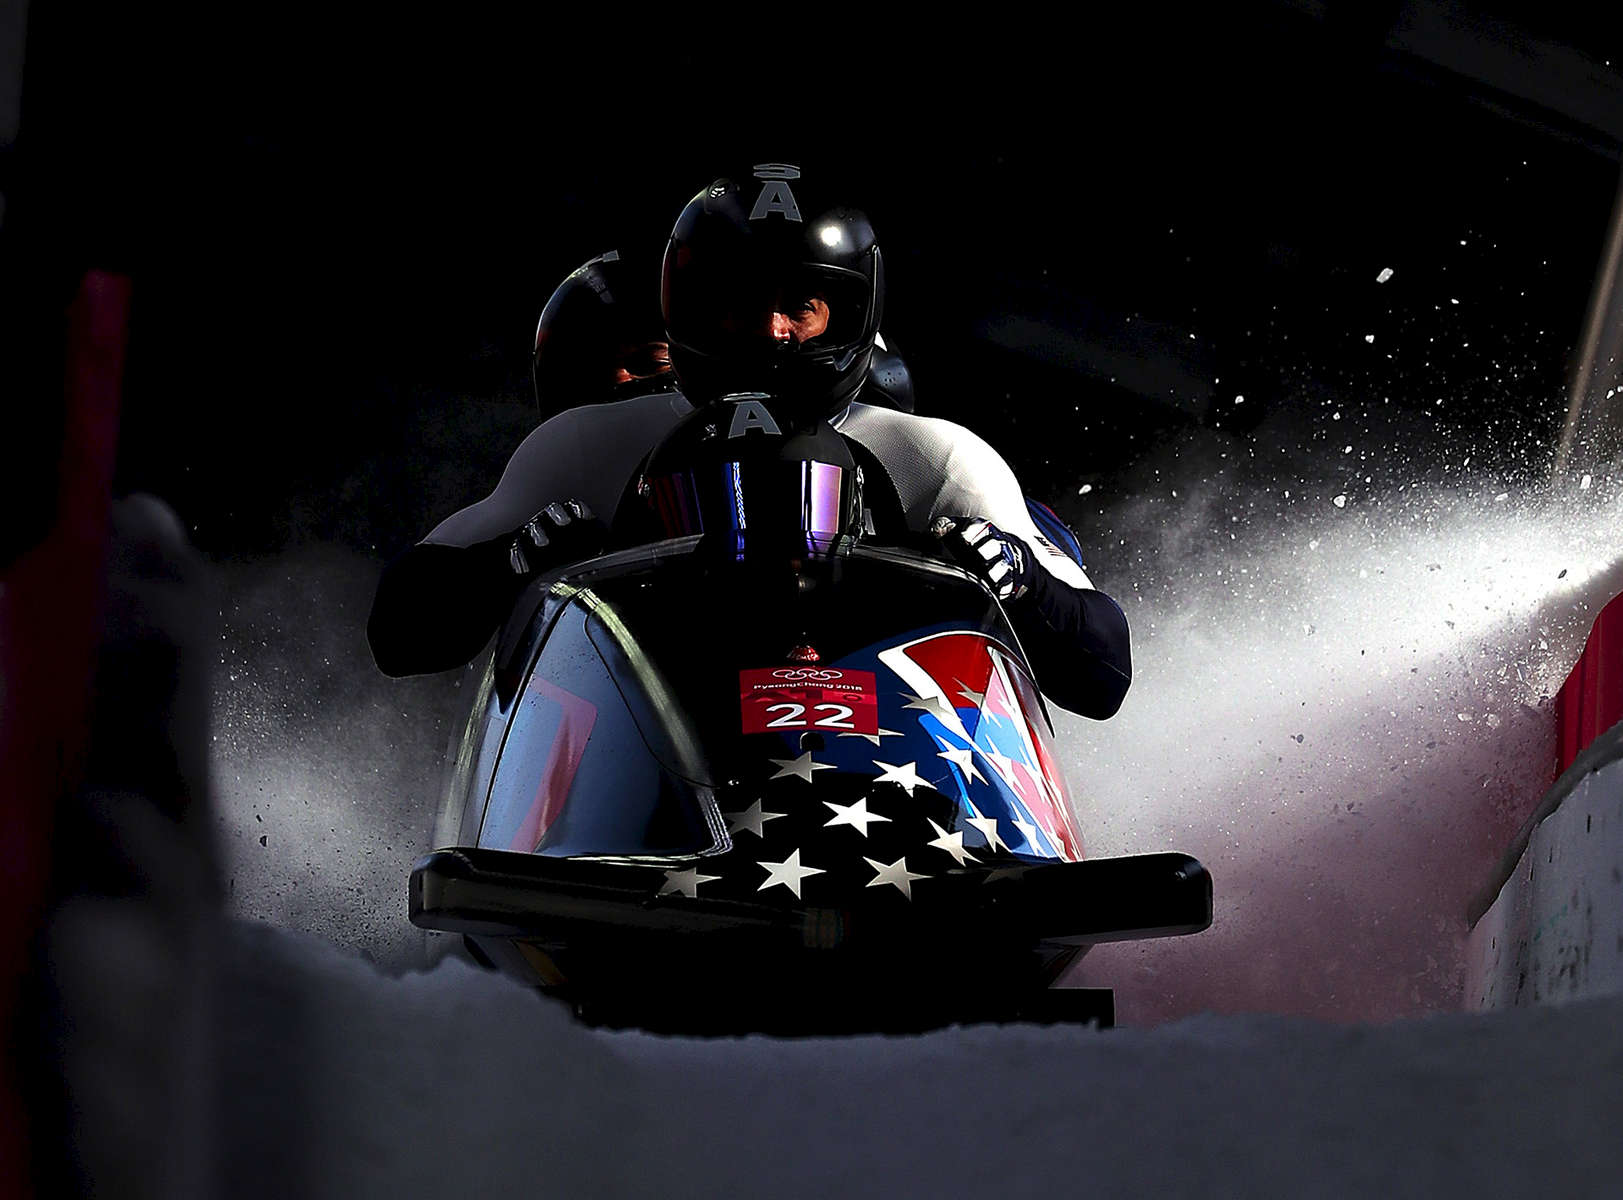 Nick Cunningham, Hakeem Abdul-Saboor, Christopher Kinney and Samuel Michener of the United States finish their run during the 4-man Boblseigh Heats on day sixteen of the PyeongChang 2018 Winter Olympic Games at Olympic Sliding Centre on February 25, 2018 in Pyeongchang-gun, South Korea.